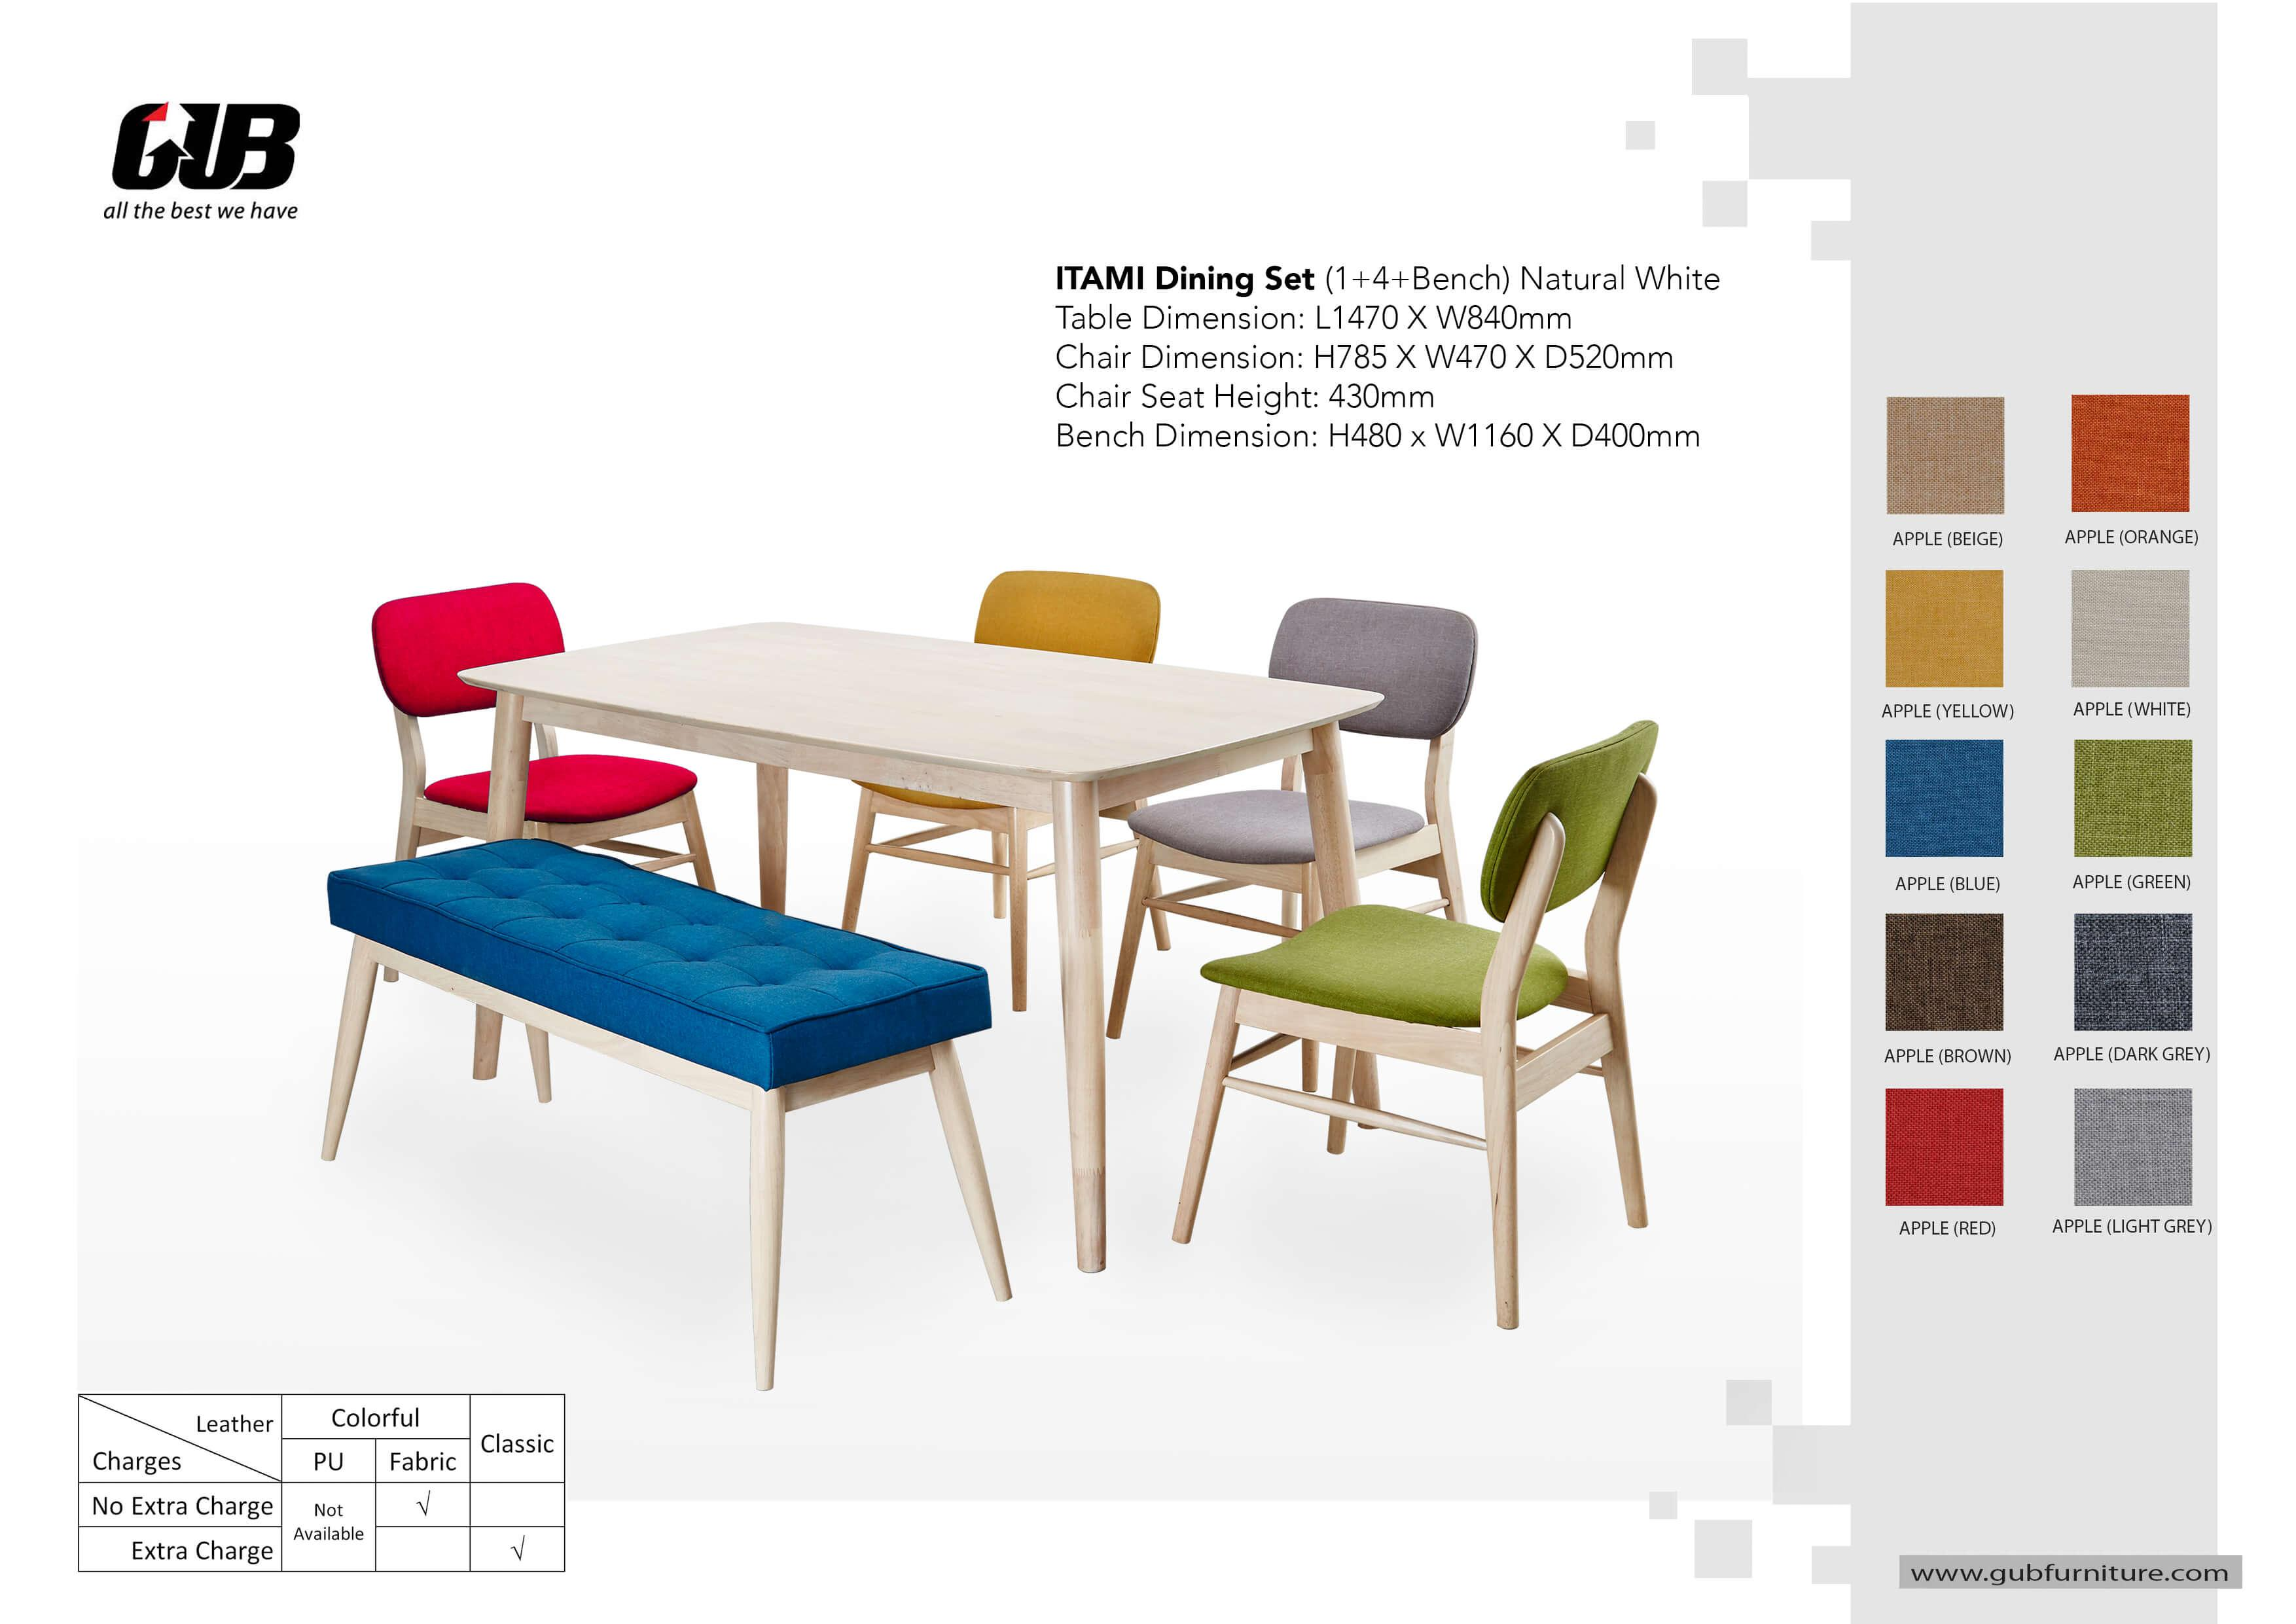 Elizabella 1+4 With Long Bench Dining Set